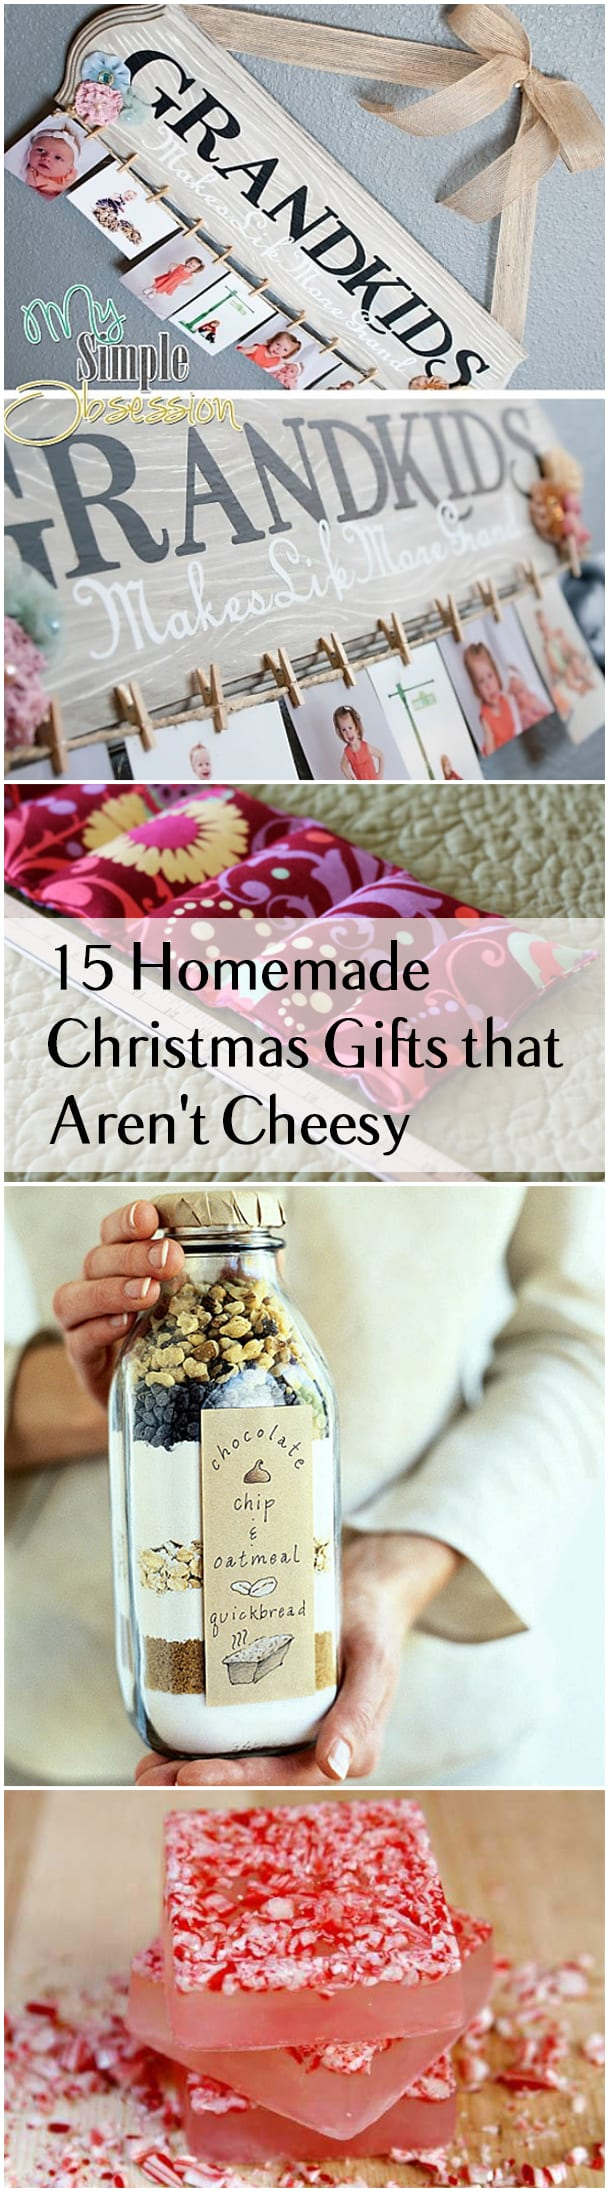 Christmas Craft Ideas For Grandparents Part - 46: 15 Homemade Christmas Gifts That Arenu0027t Cheesy